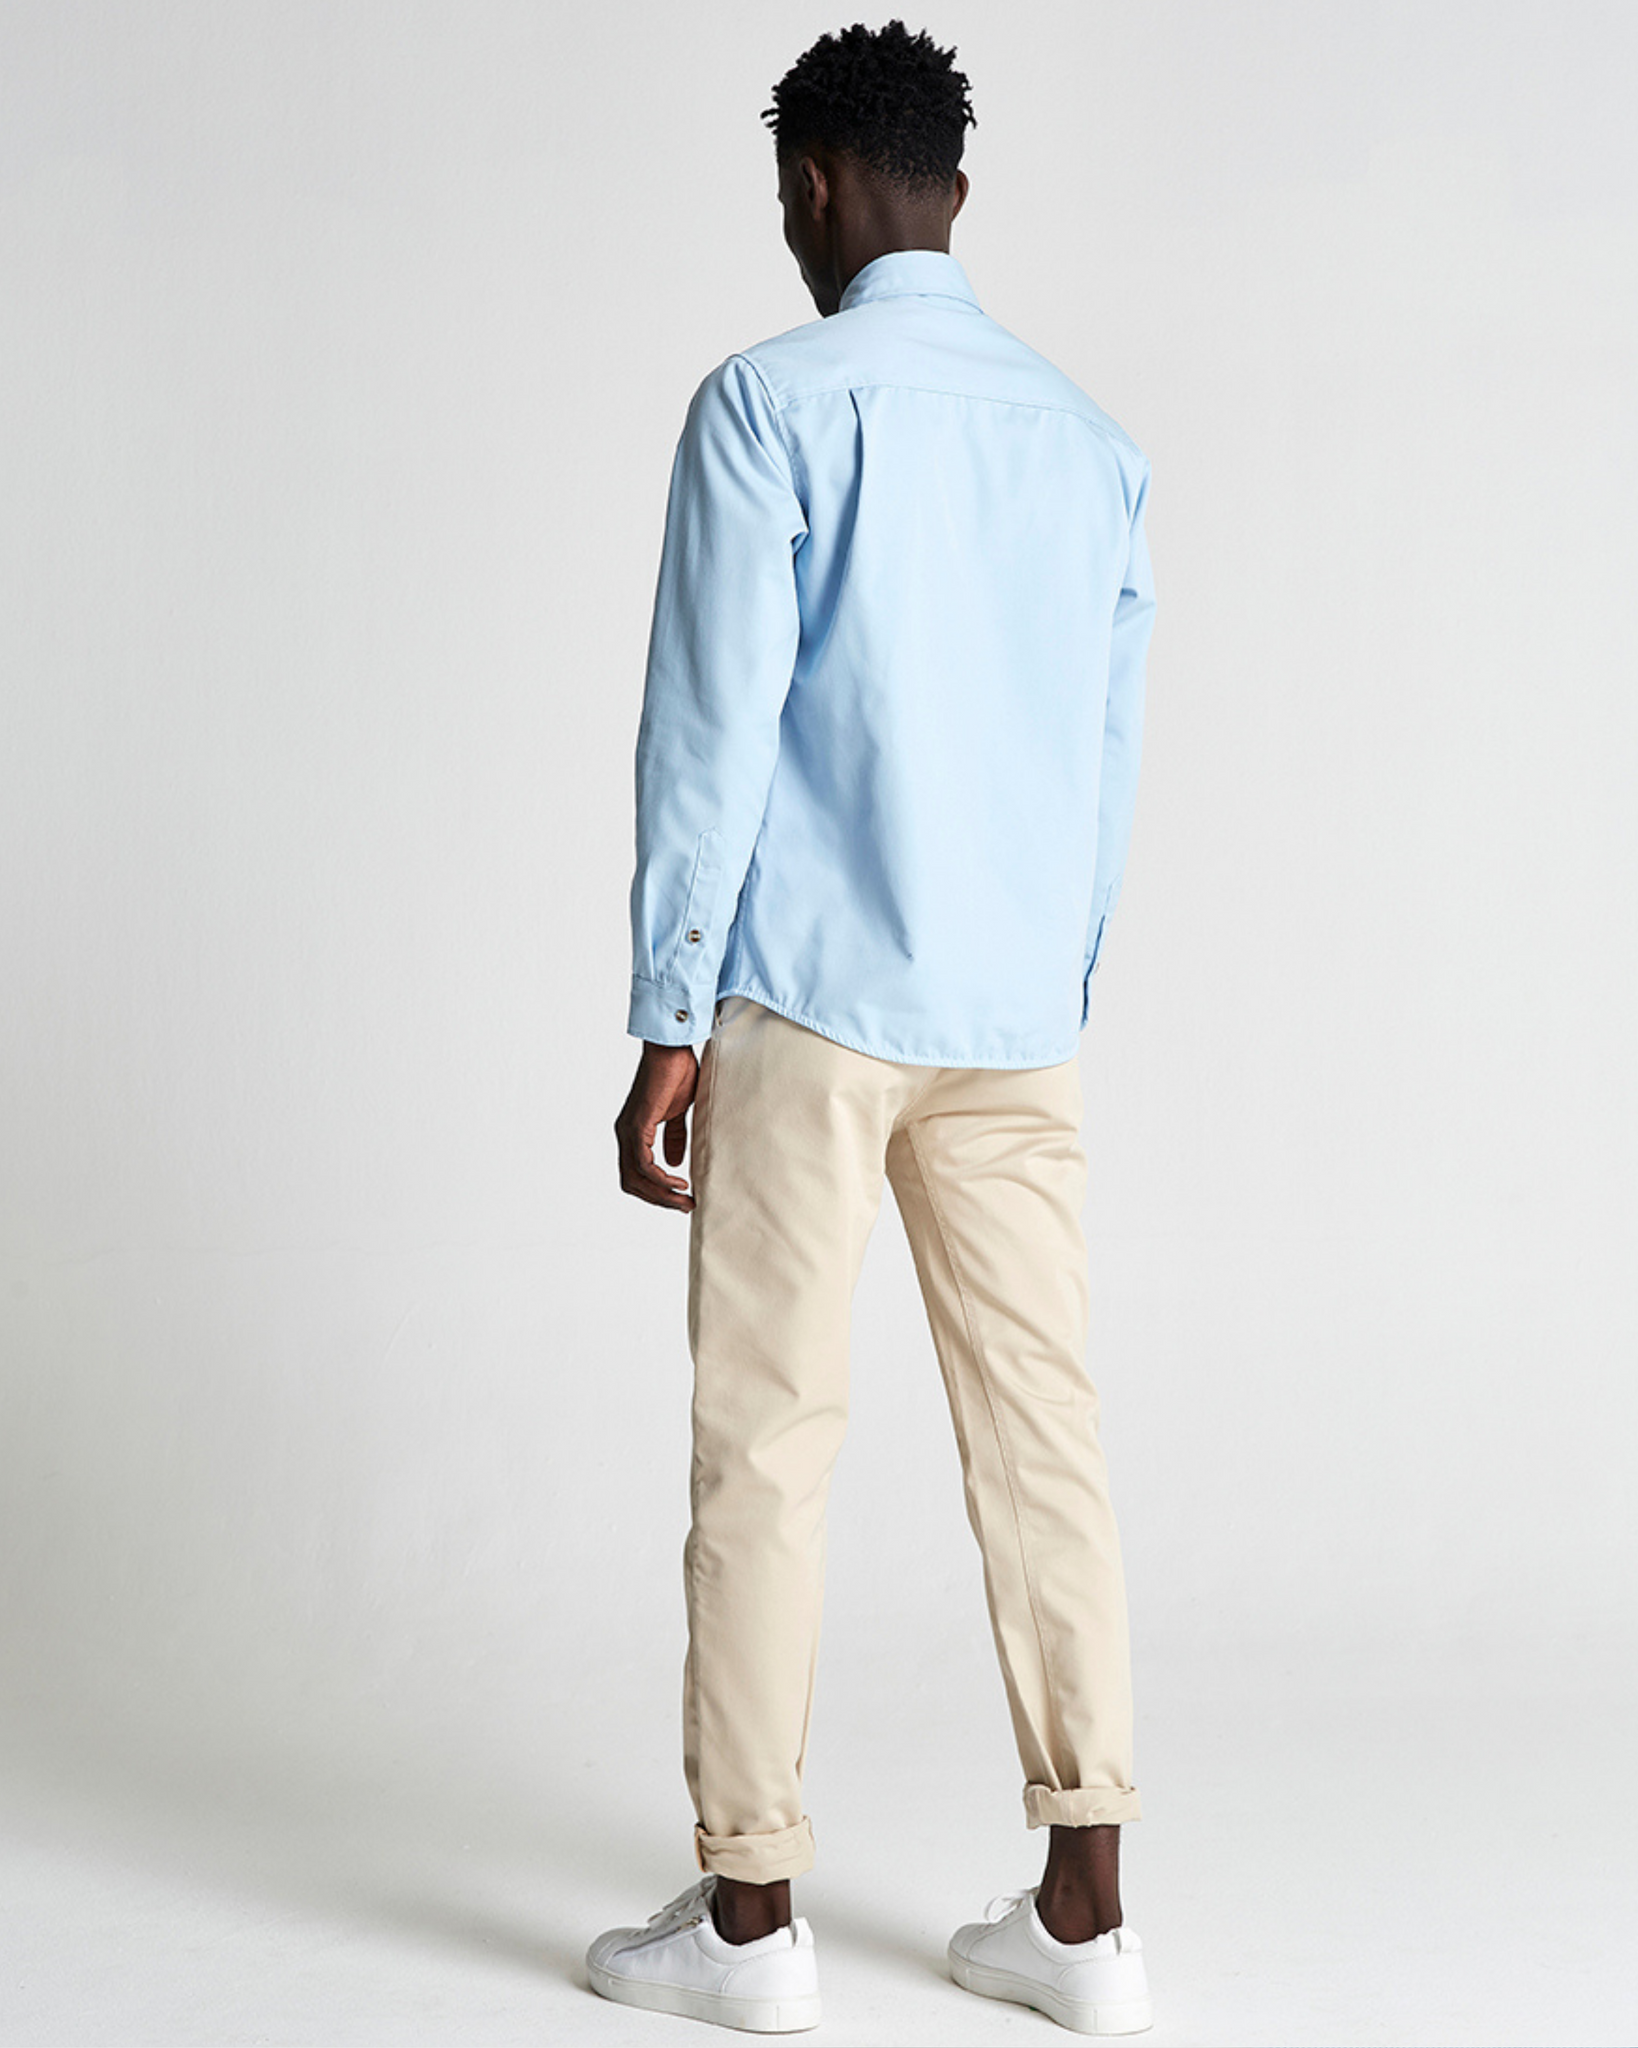 The 1 Pocket Shirt in Blue Bell